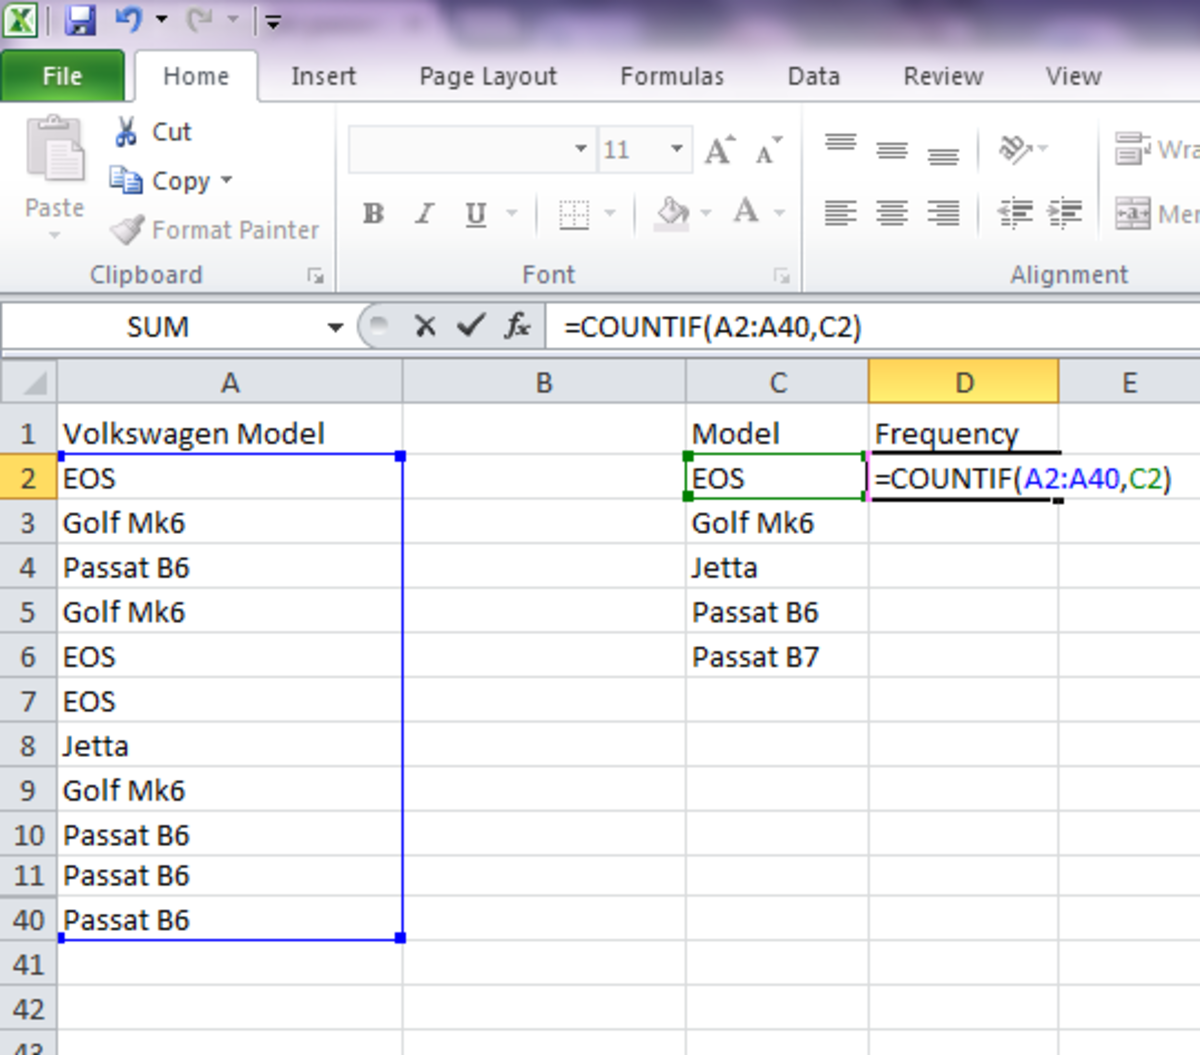 To get the relative distribution of each item in a list, use Excel's COUNTIF() function.